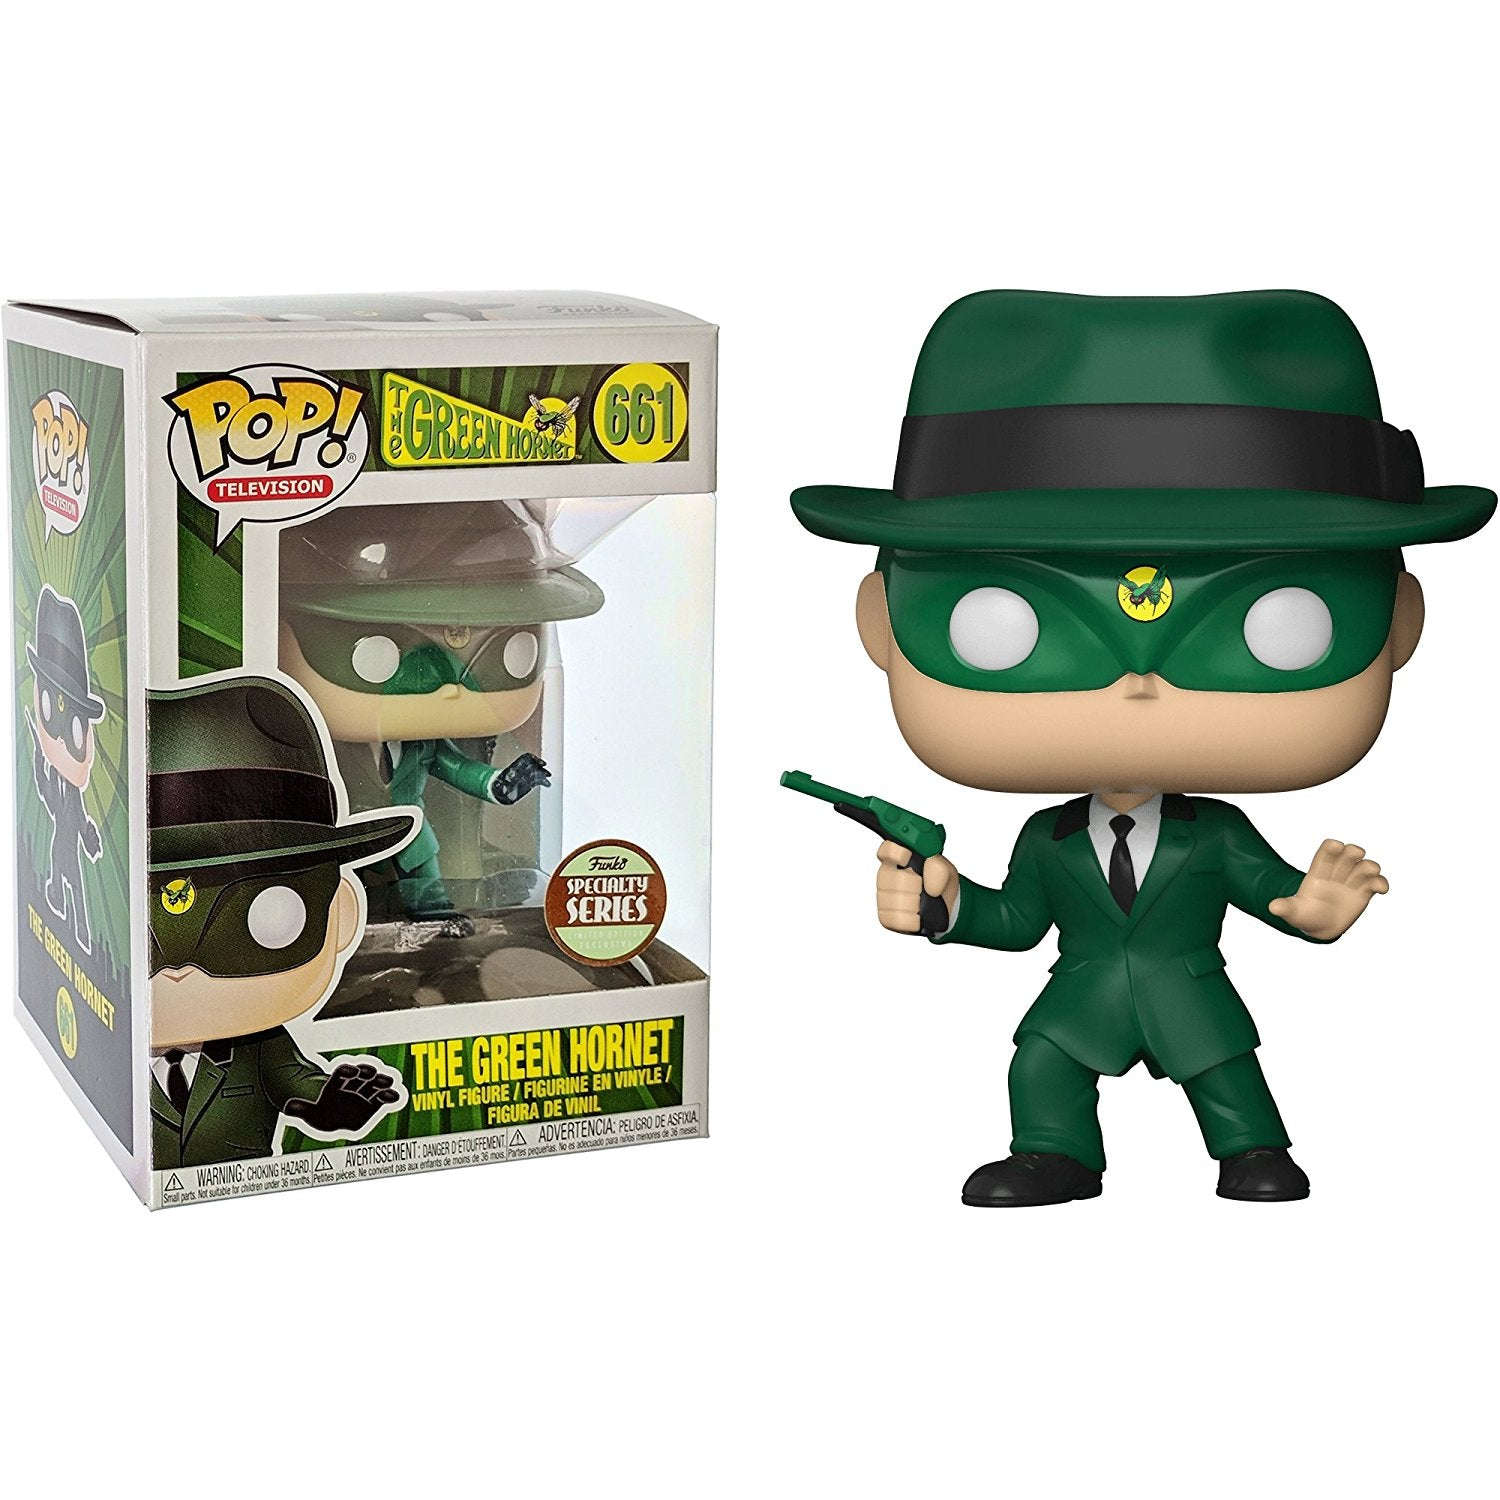 Green Hornet Funko Pop! Television Specialty Series